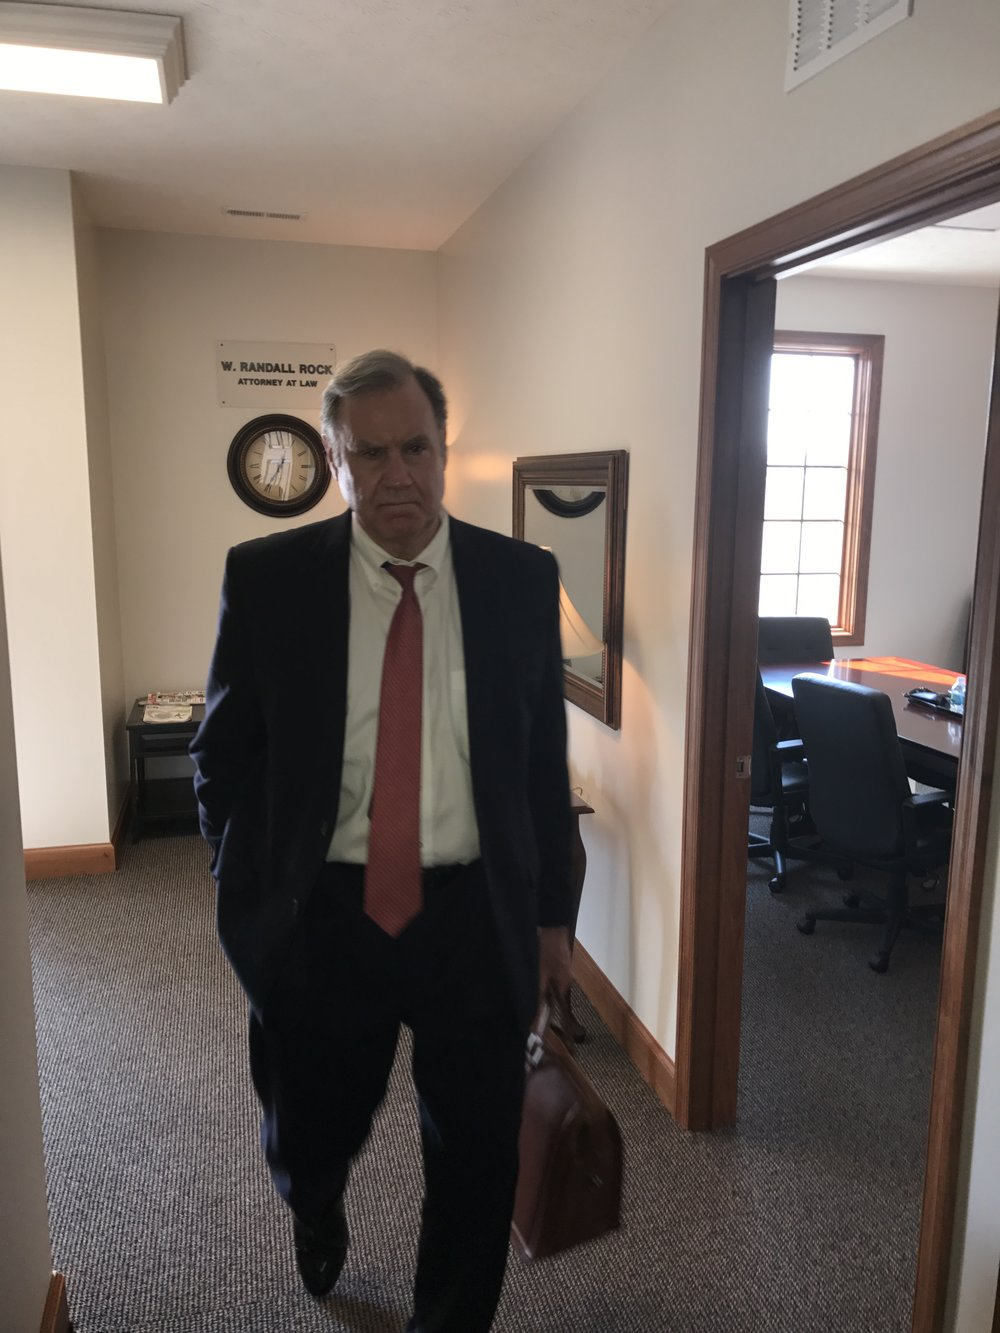 W. Randall Rock Attorney at Law walking in his office after arguing a case in court